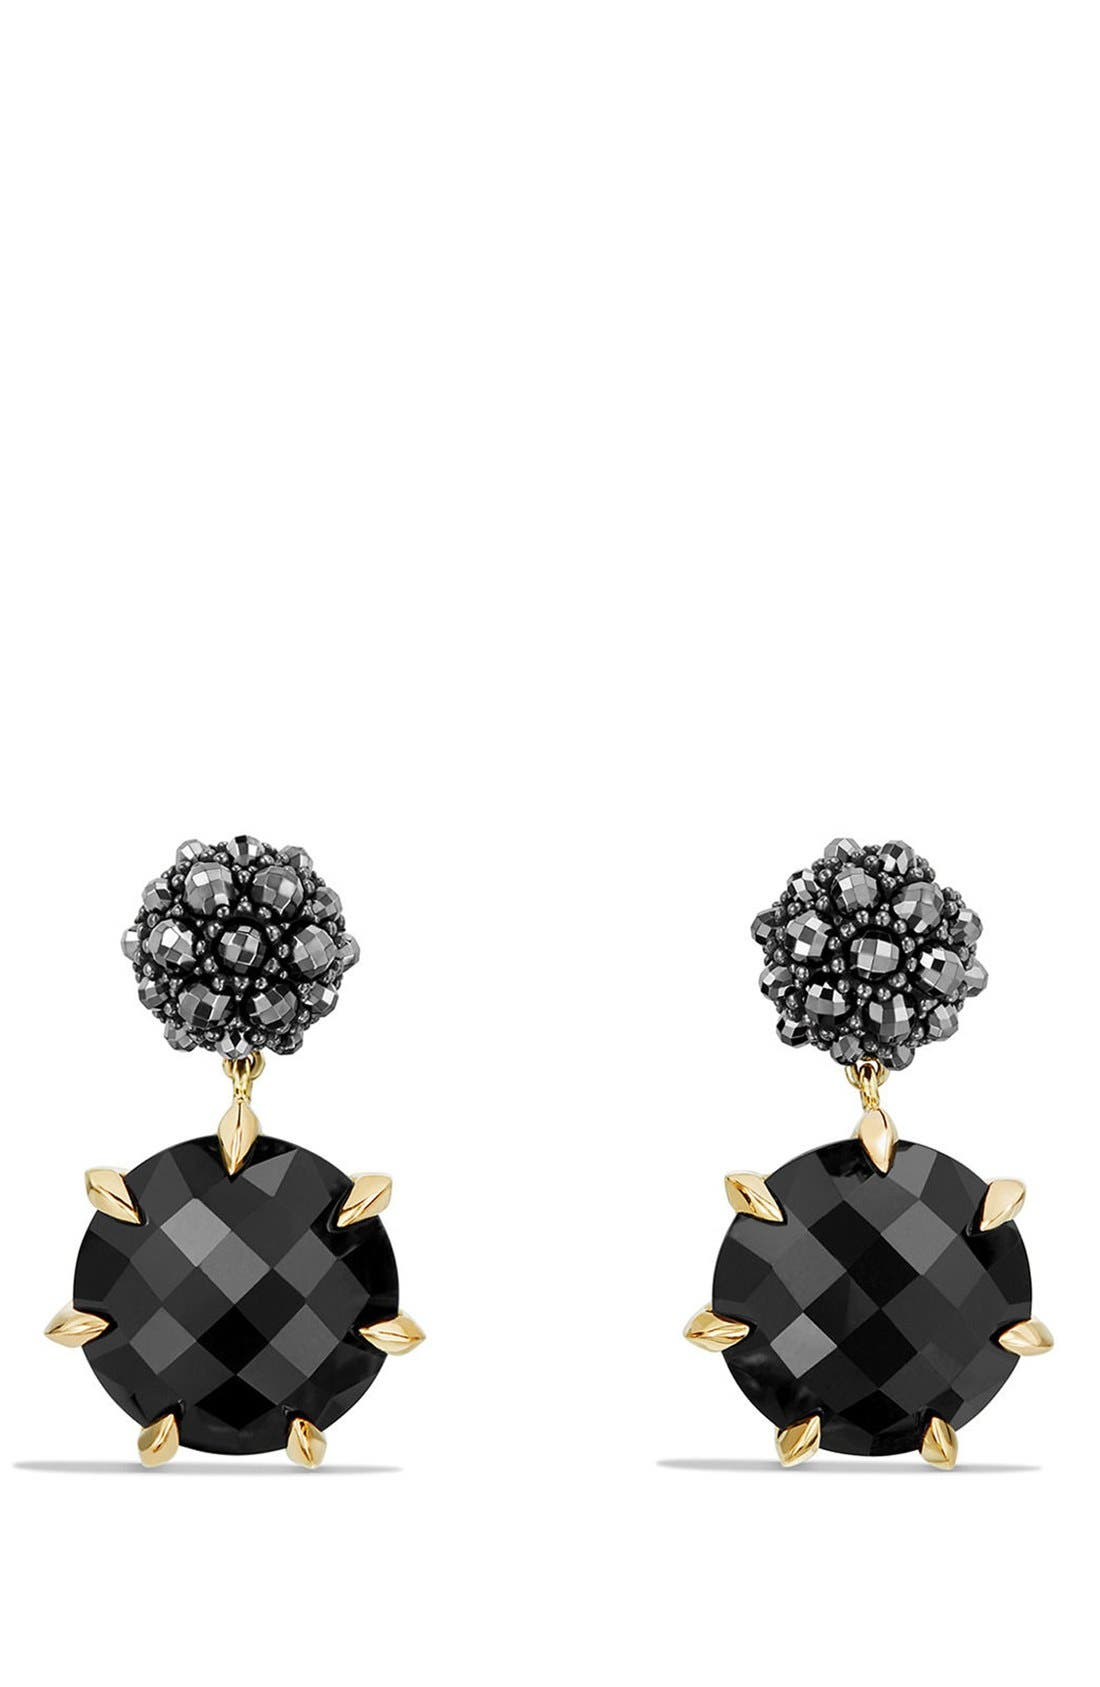 Main Image - David Yurman Osetra Drop Earrings with 18K Gold